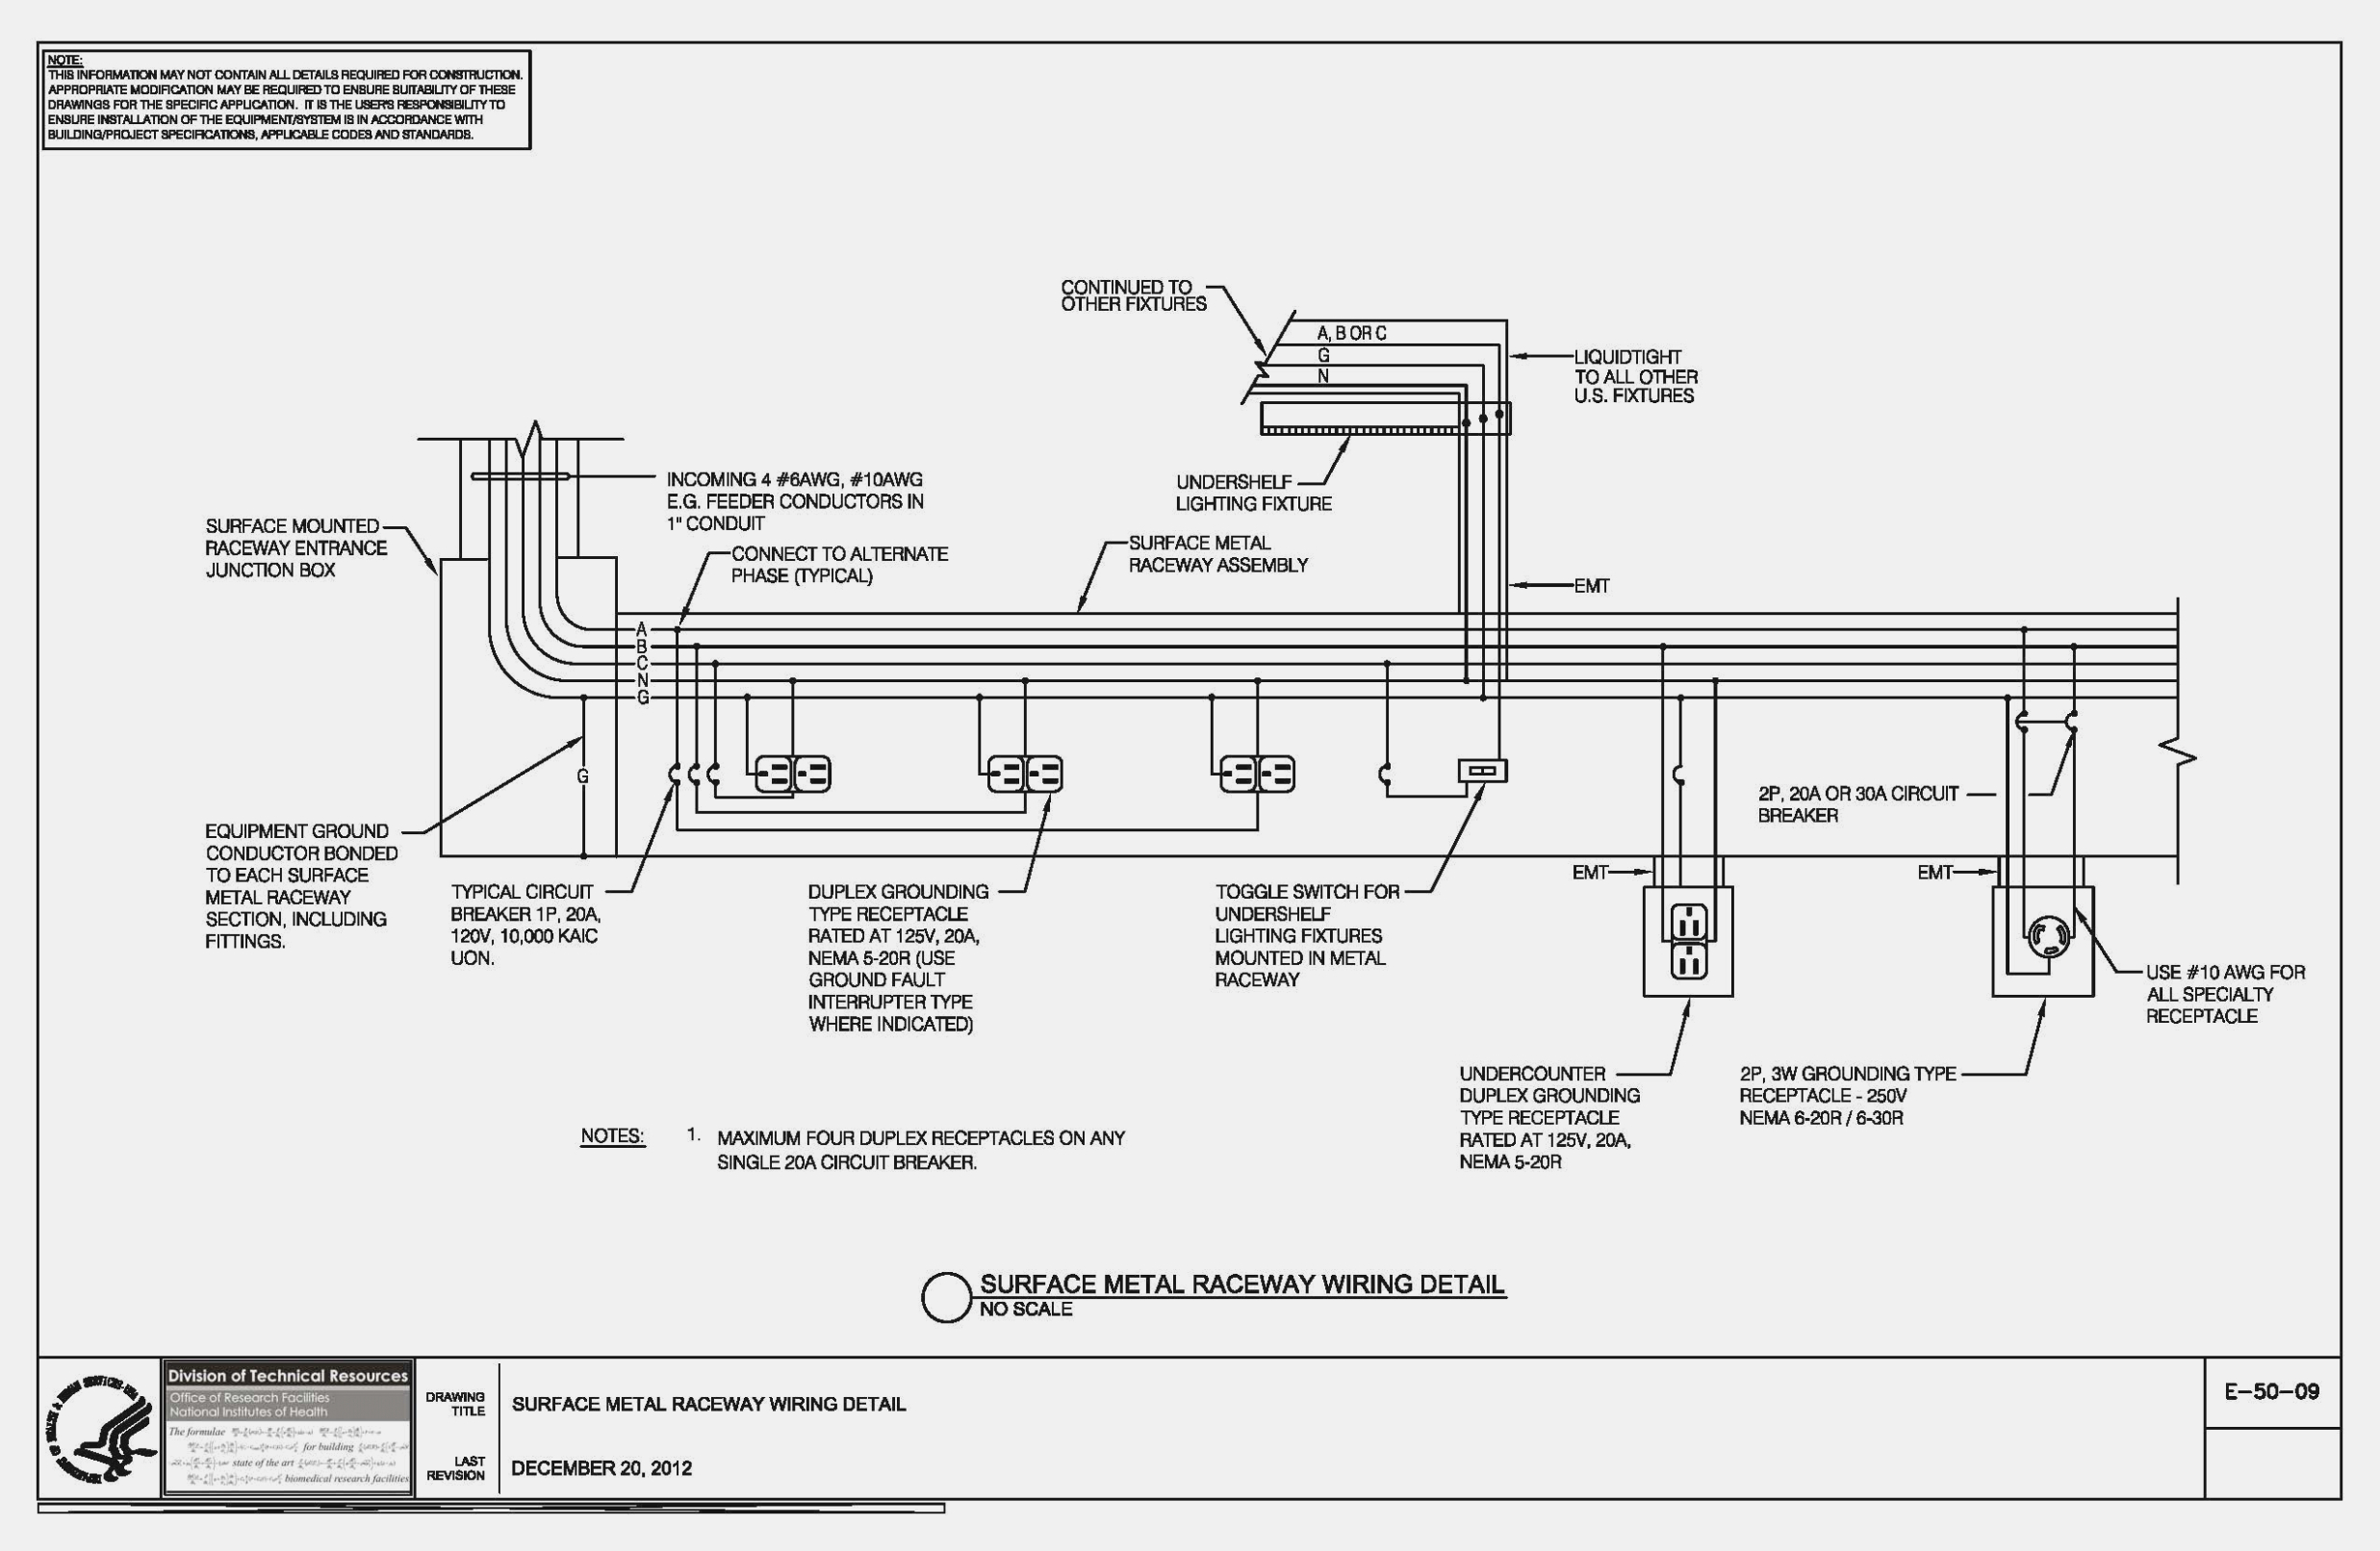 Swimming Pool Electrical Wiring Diagram - Trusted Wiring Diagram Online - Swimming Pool Electrical Wiring Diagram